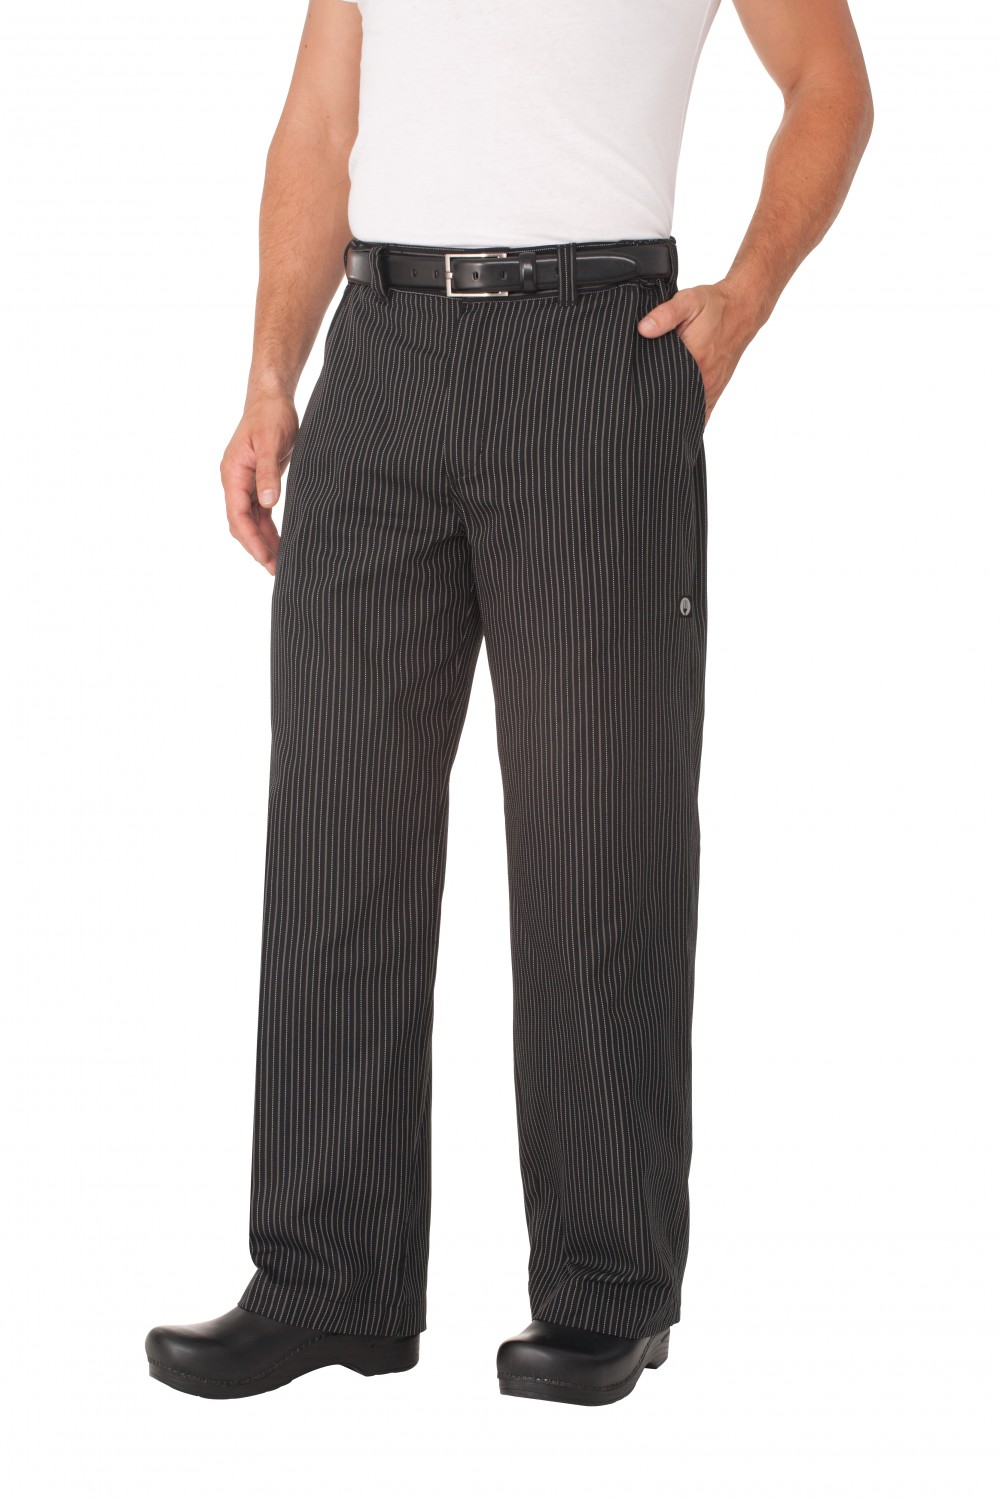 Chef Works PSER-GST Gray Stripe Professional Series Chef Pants